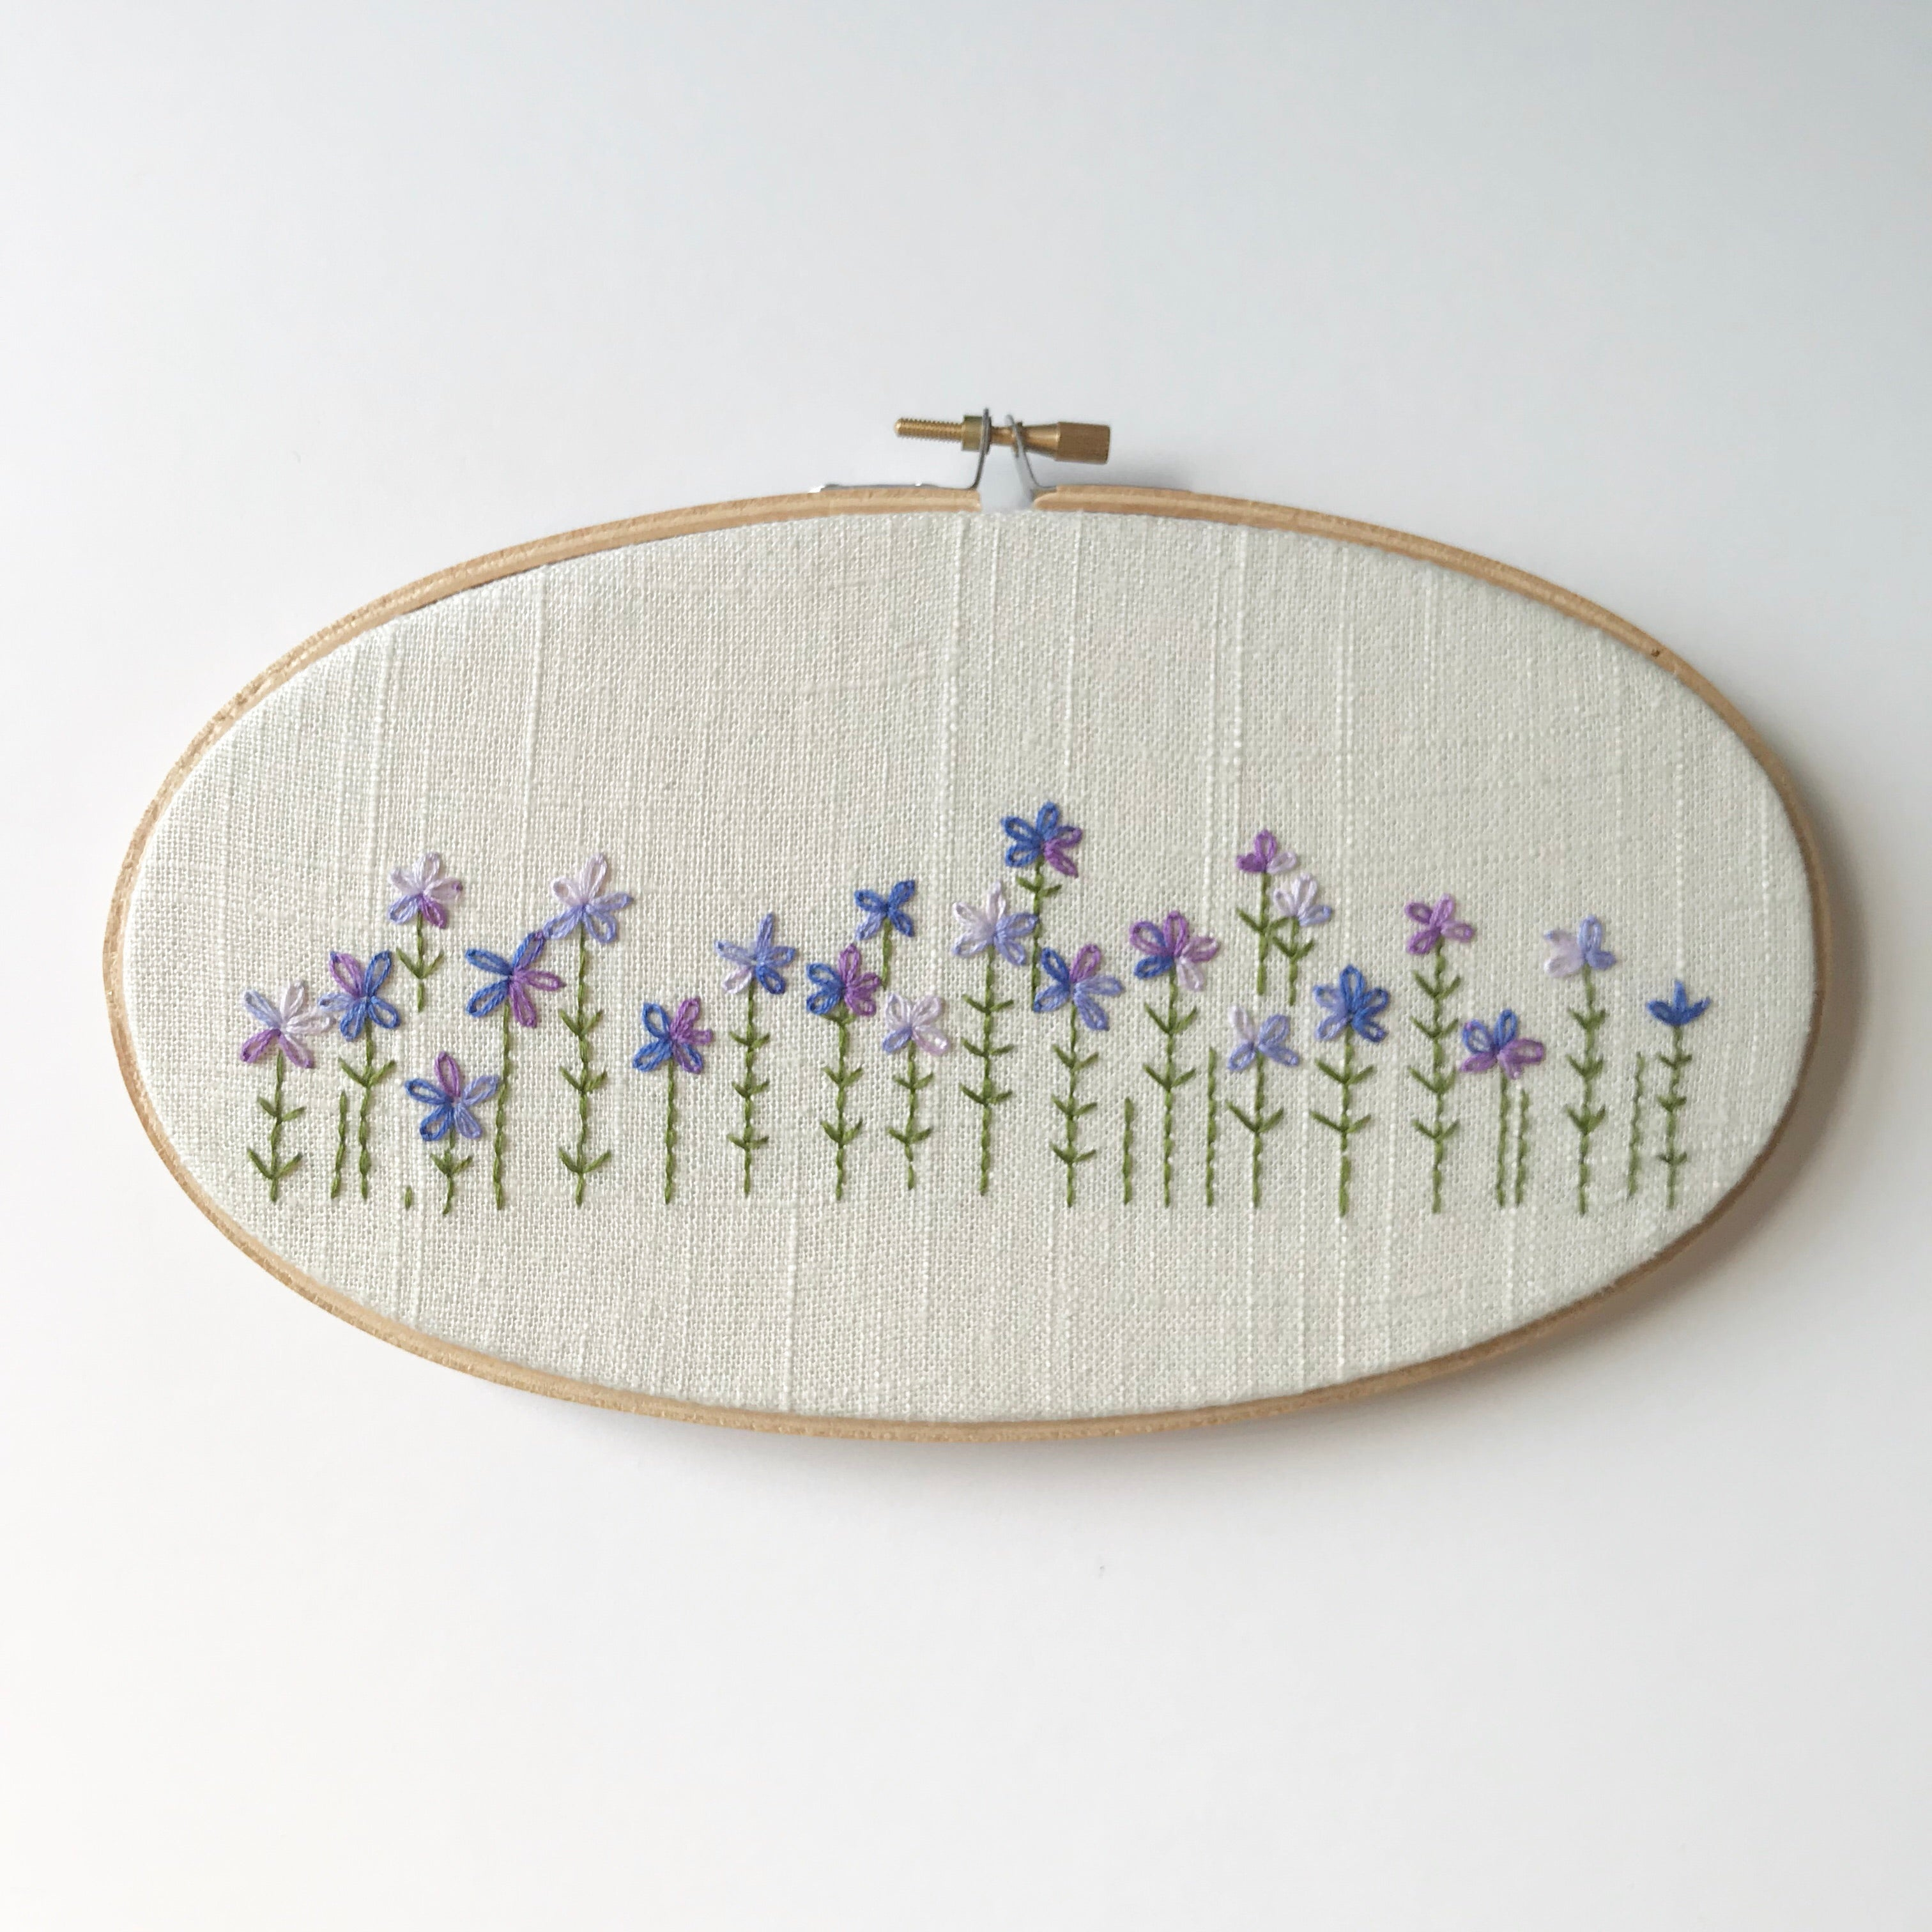 "EMBROIDERY HOOP - 4"" X 9"" PURPLE WILDFLOWERS"